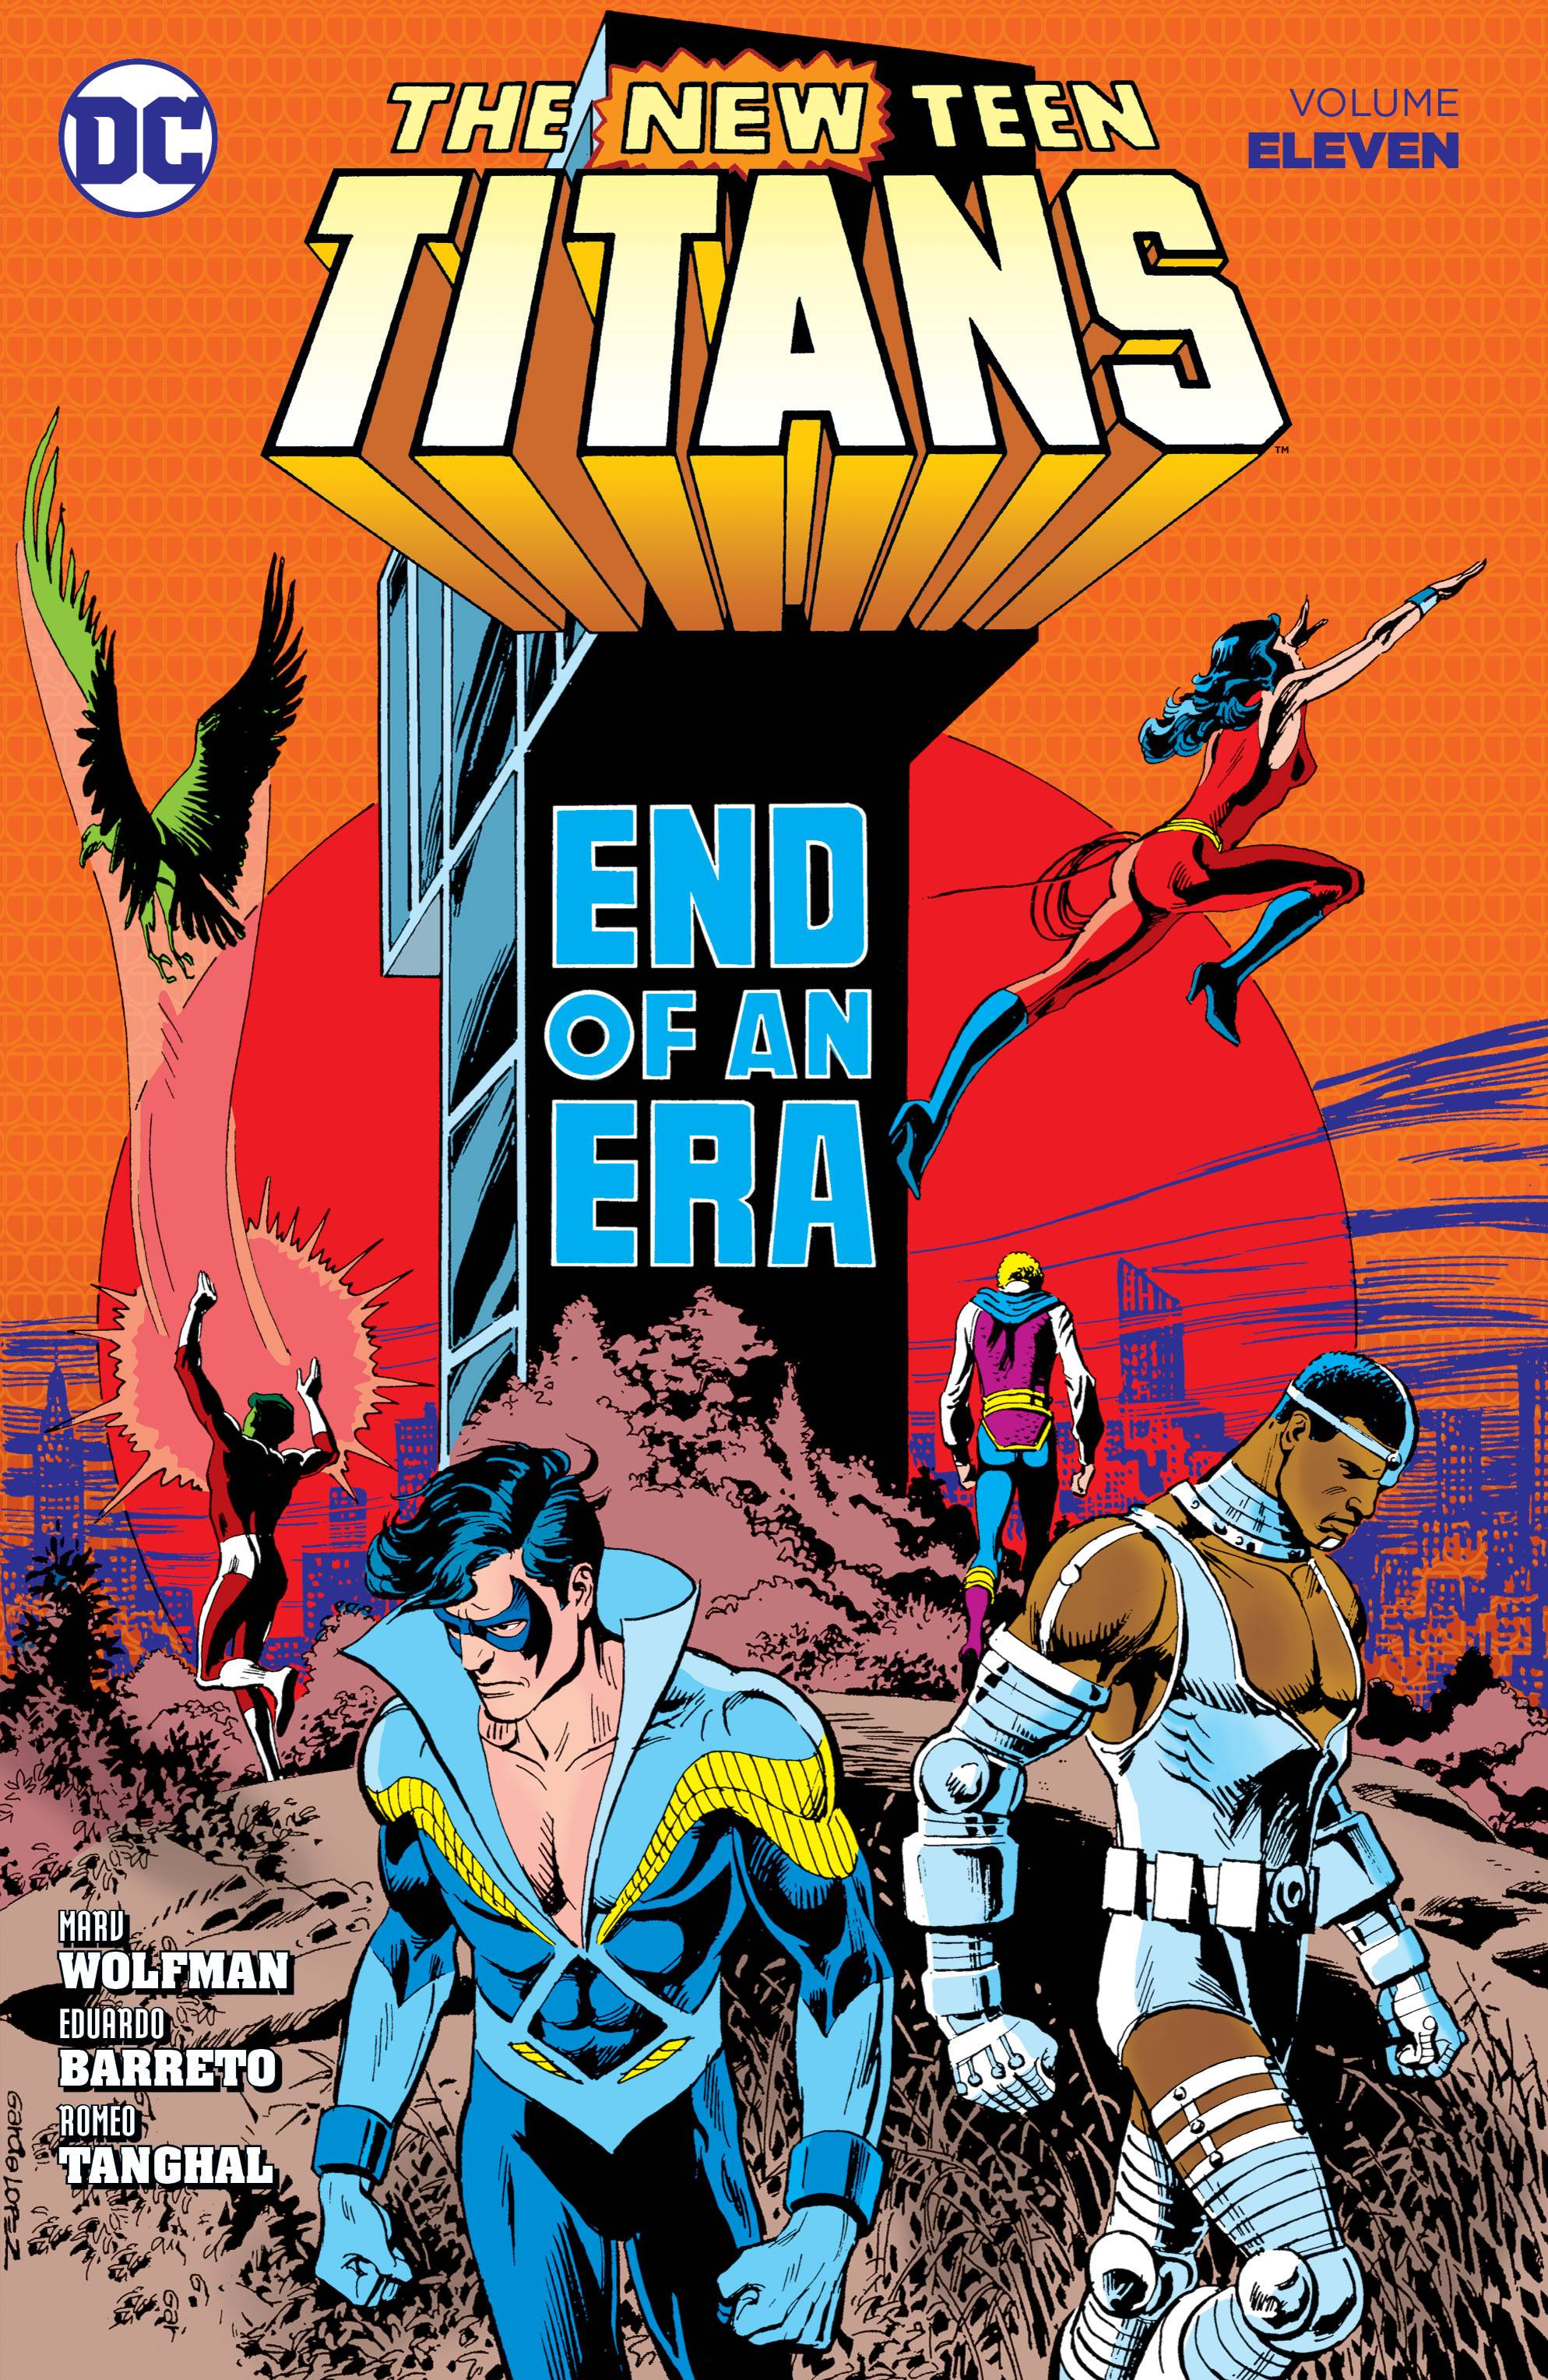 NEW TEEN TITANS TP VOL 11